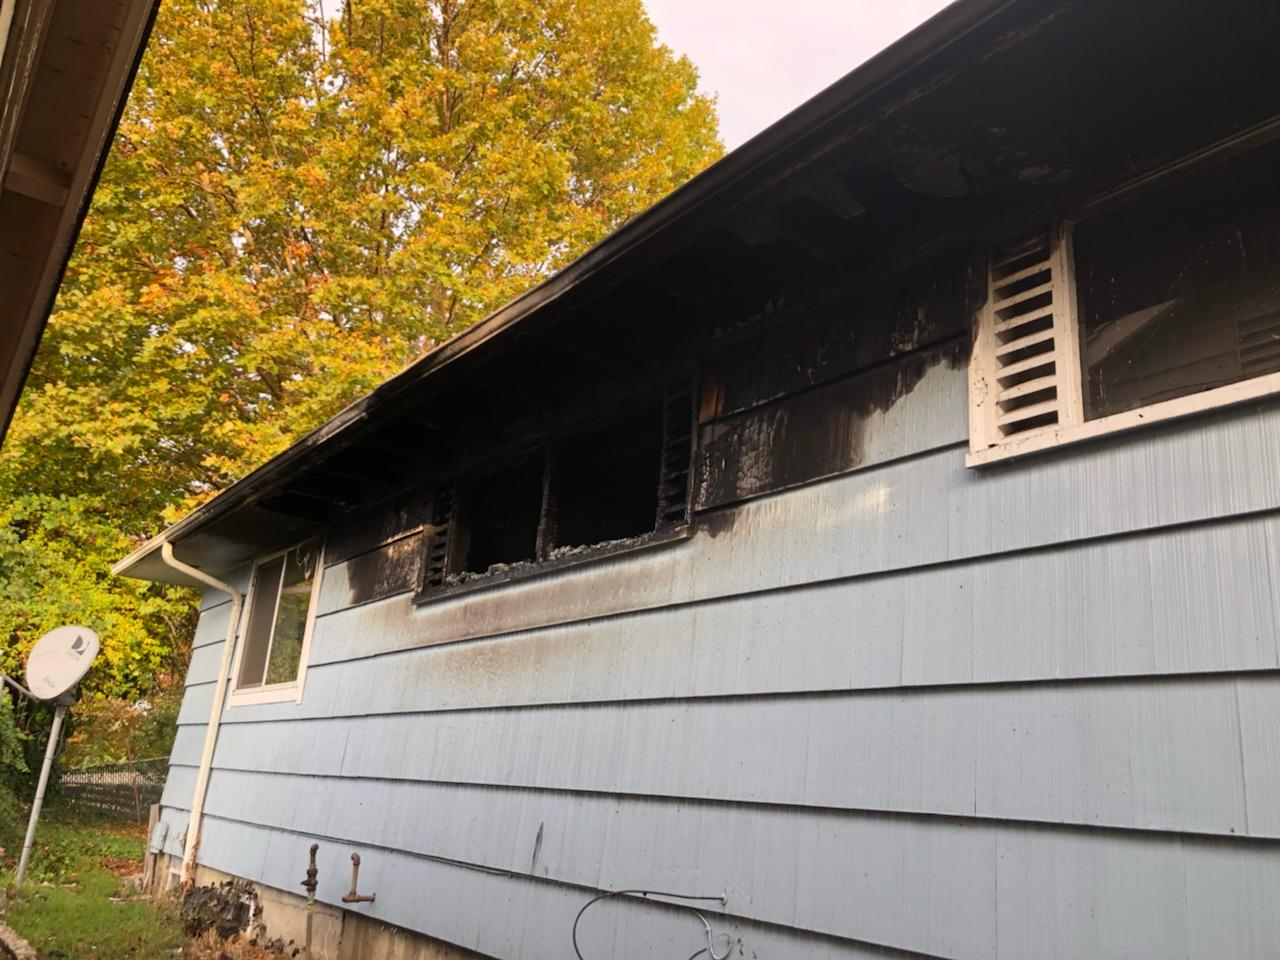 Residential Structure Fire - 1748 NW Otie Street - 10-16-19 (Photo) featured image